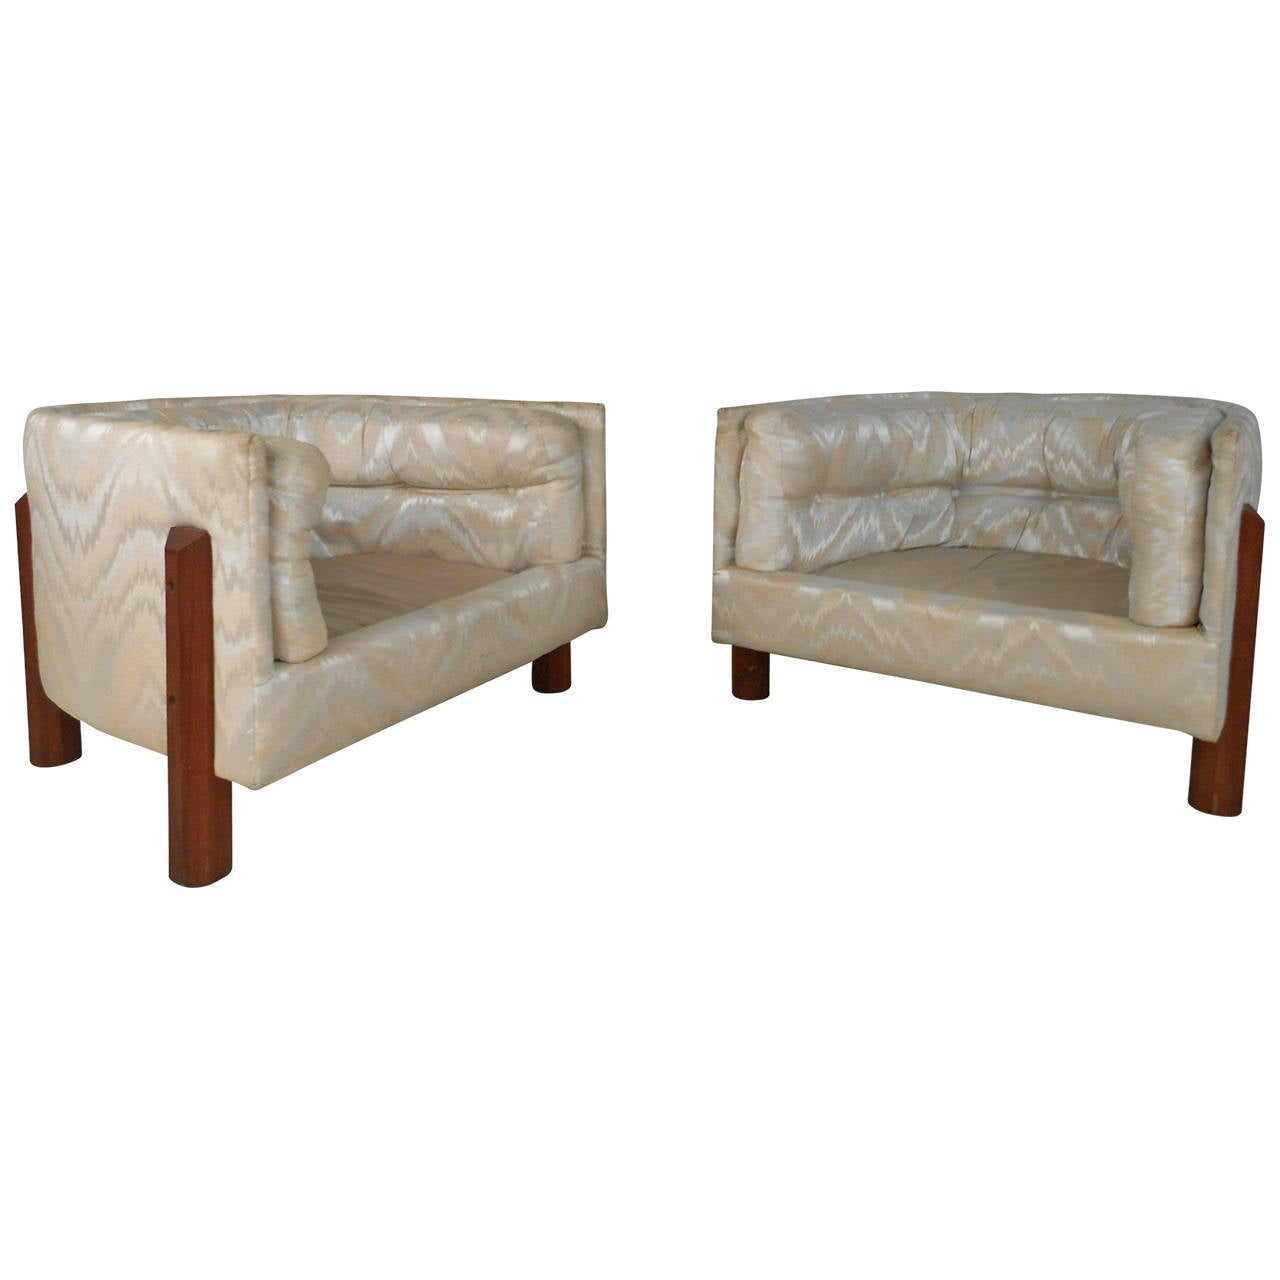 Modern Barrel Chair Pair Of Unique Tufted Mid Century Modern Barrel Back